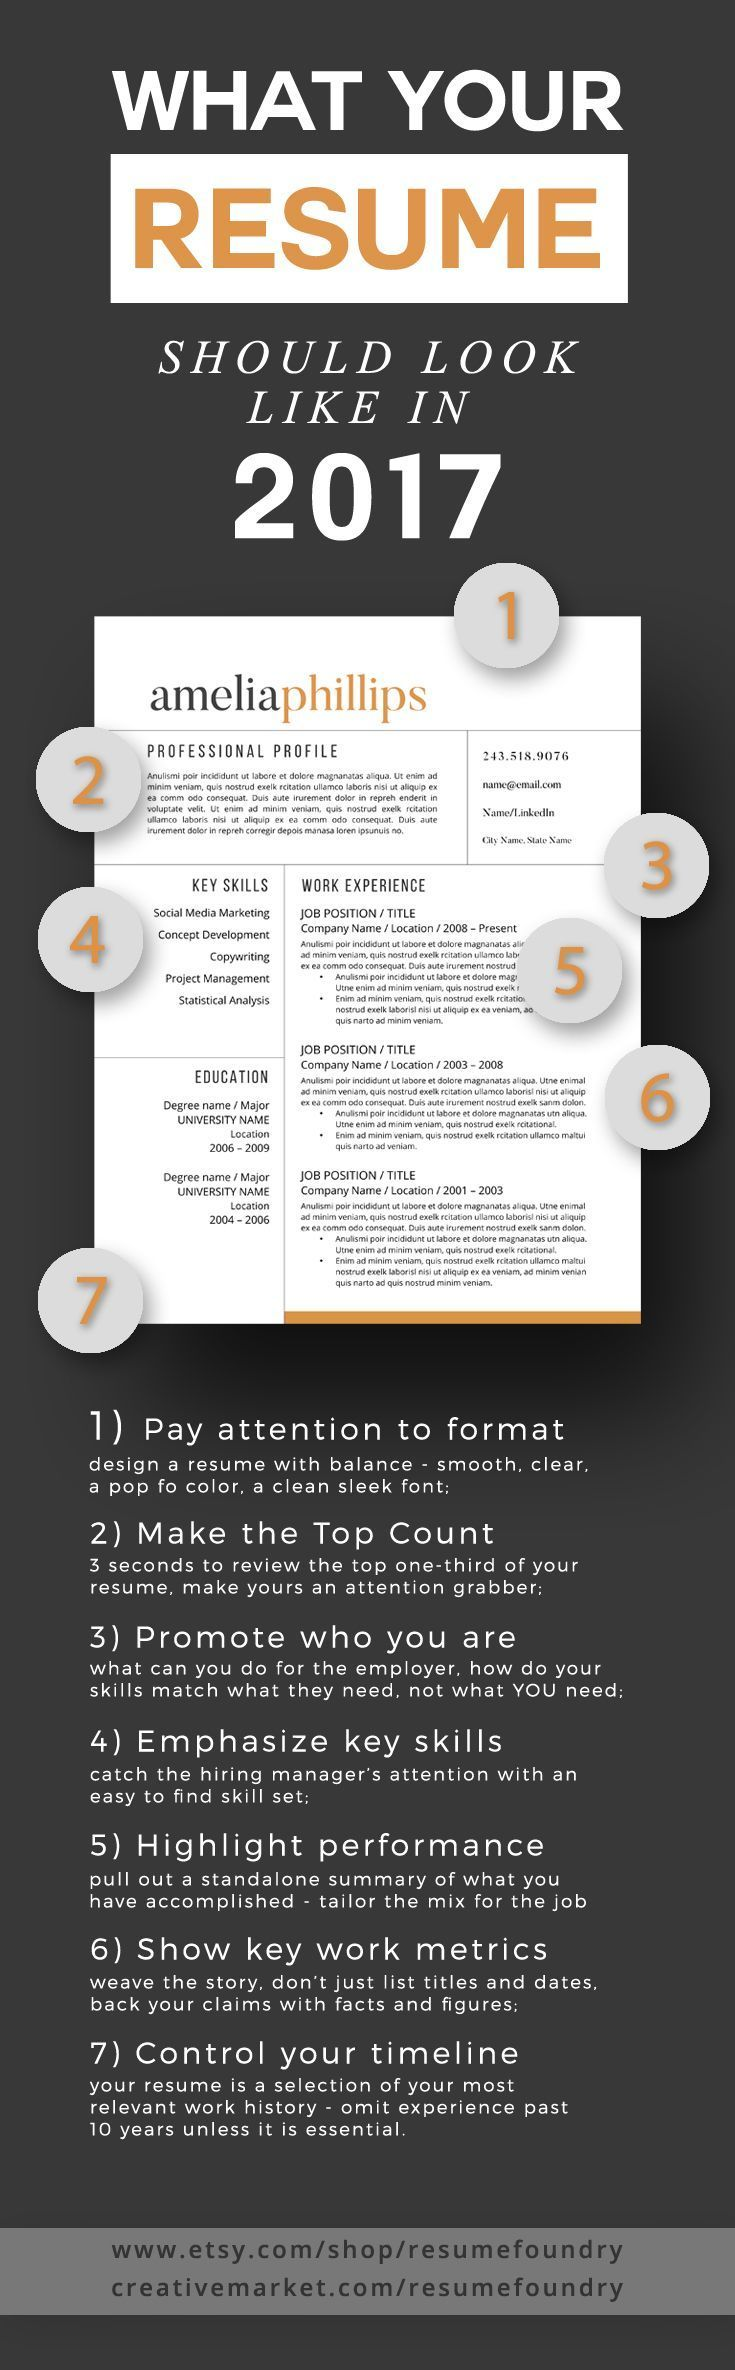 cover letter template internship%0A Resume tips  what your resume should look like in